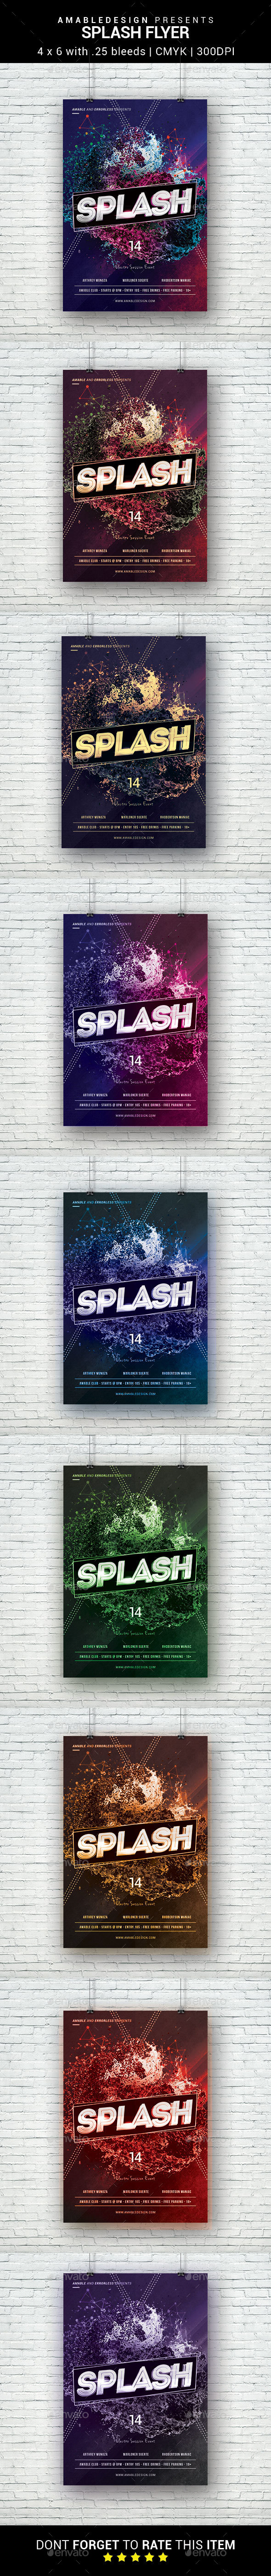 Splash Flyer - Clubs & Parties Events